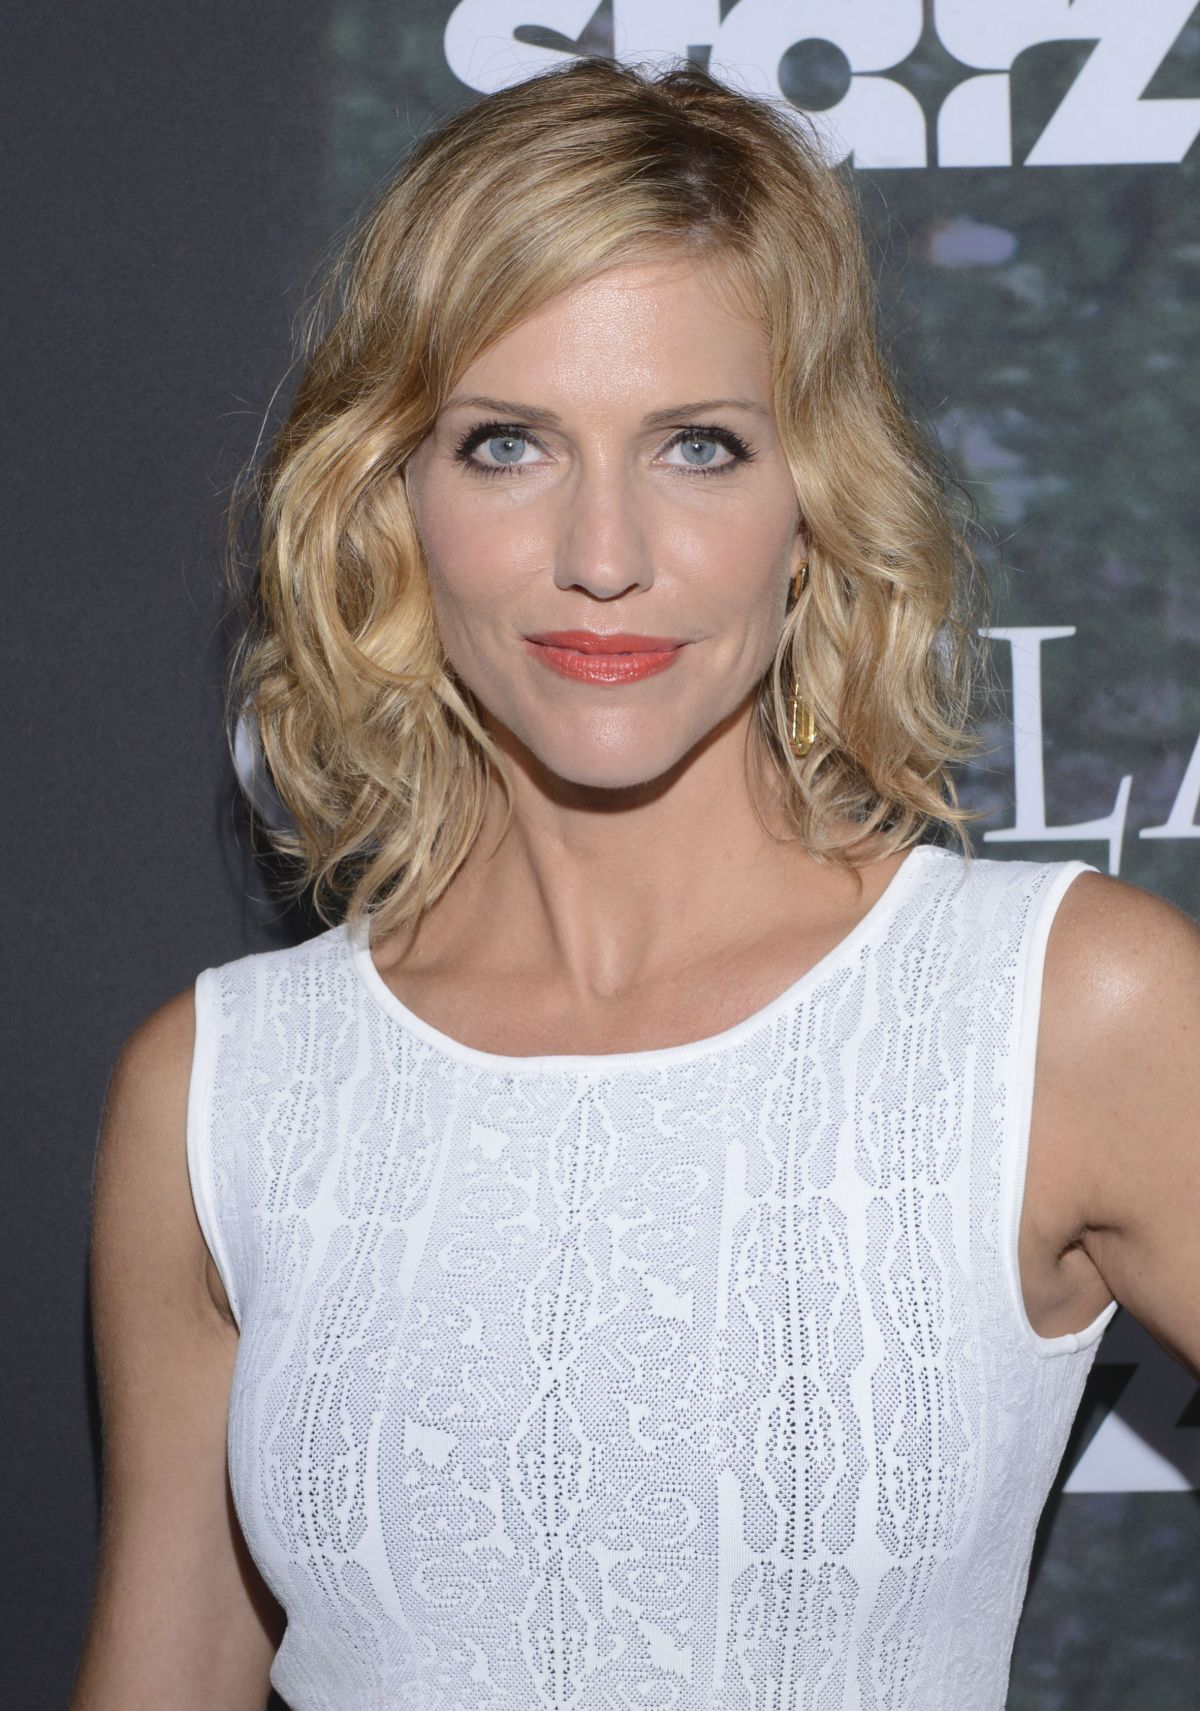 TRICIA HELFER at Outlander Panel at Comic-con 2014 in San Diego